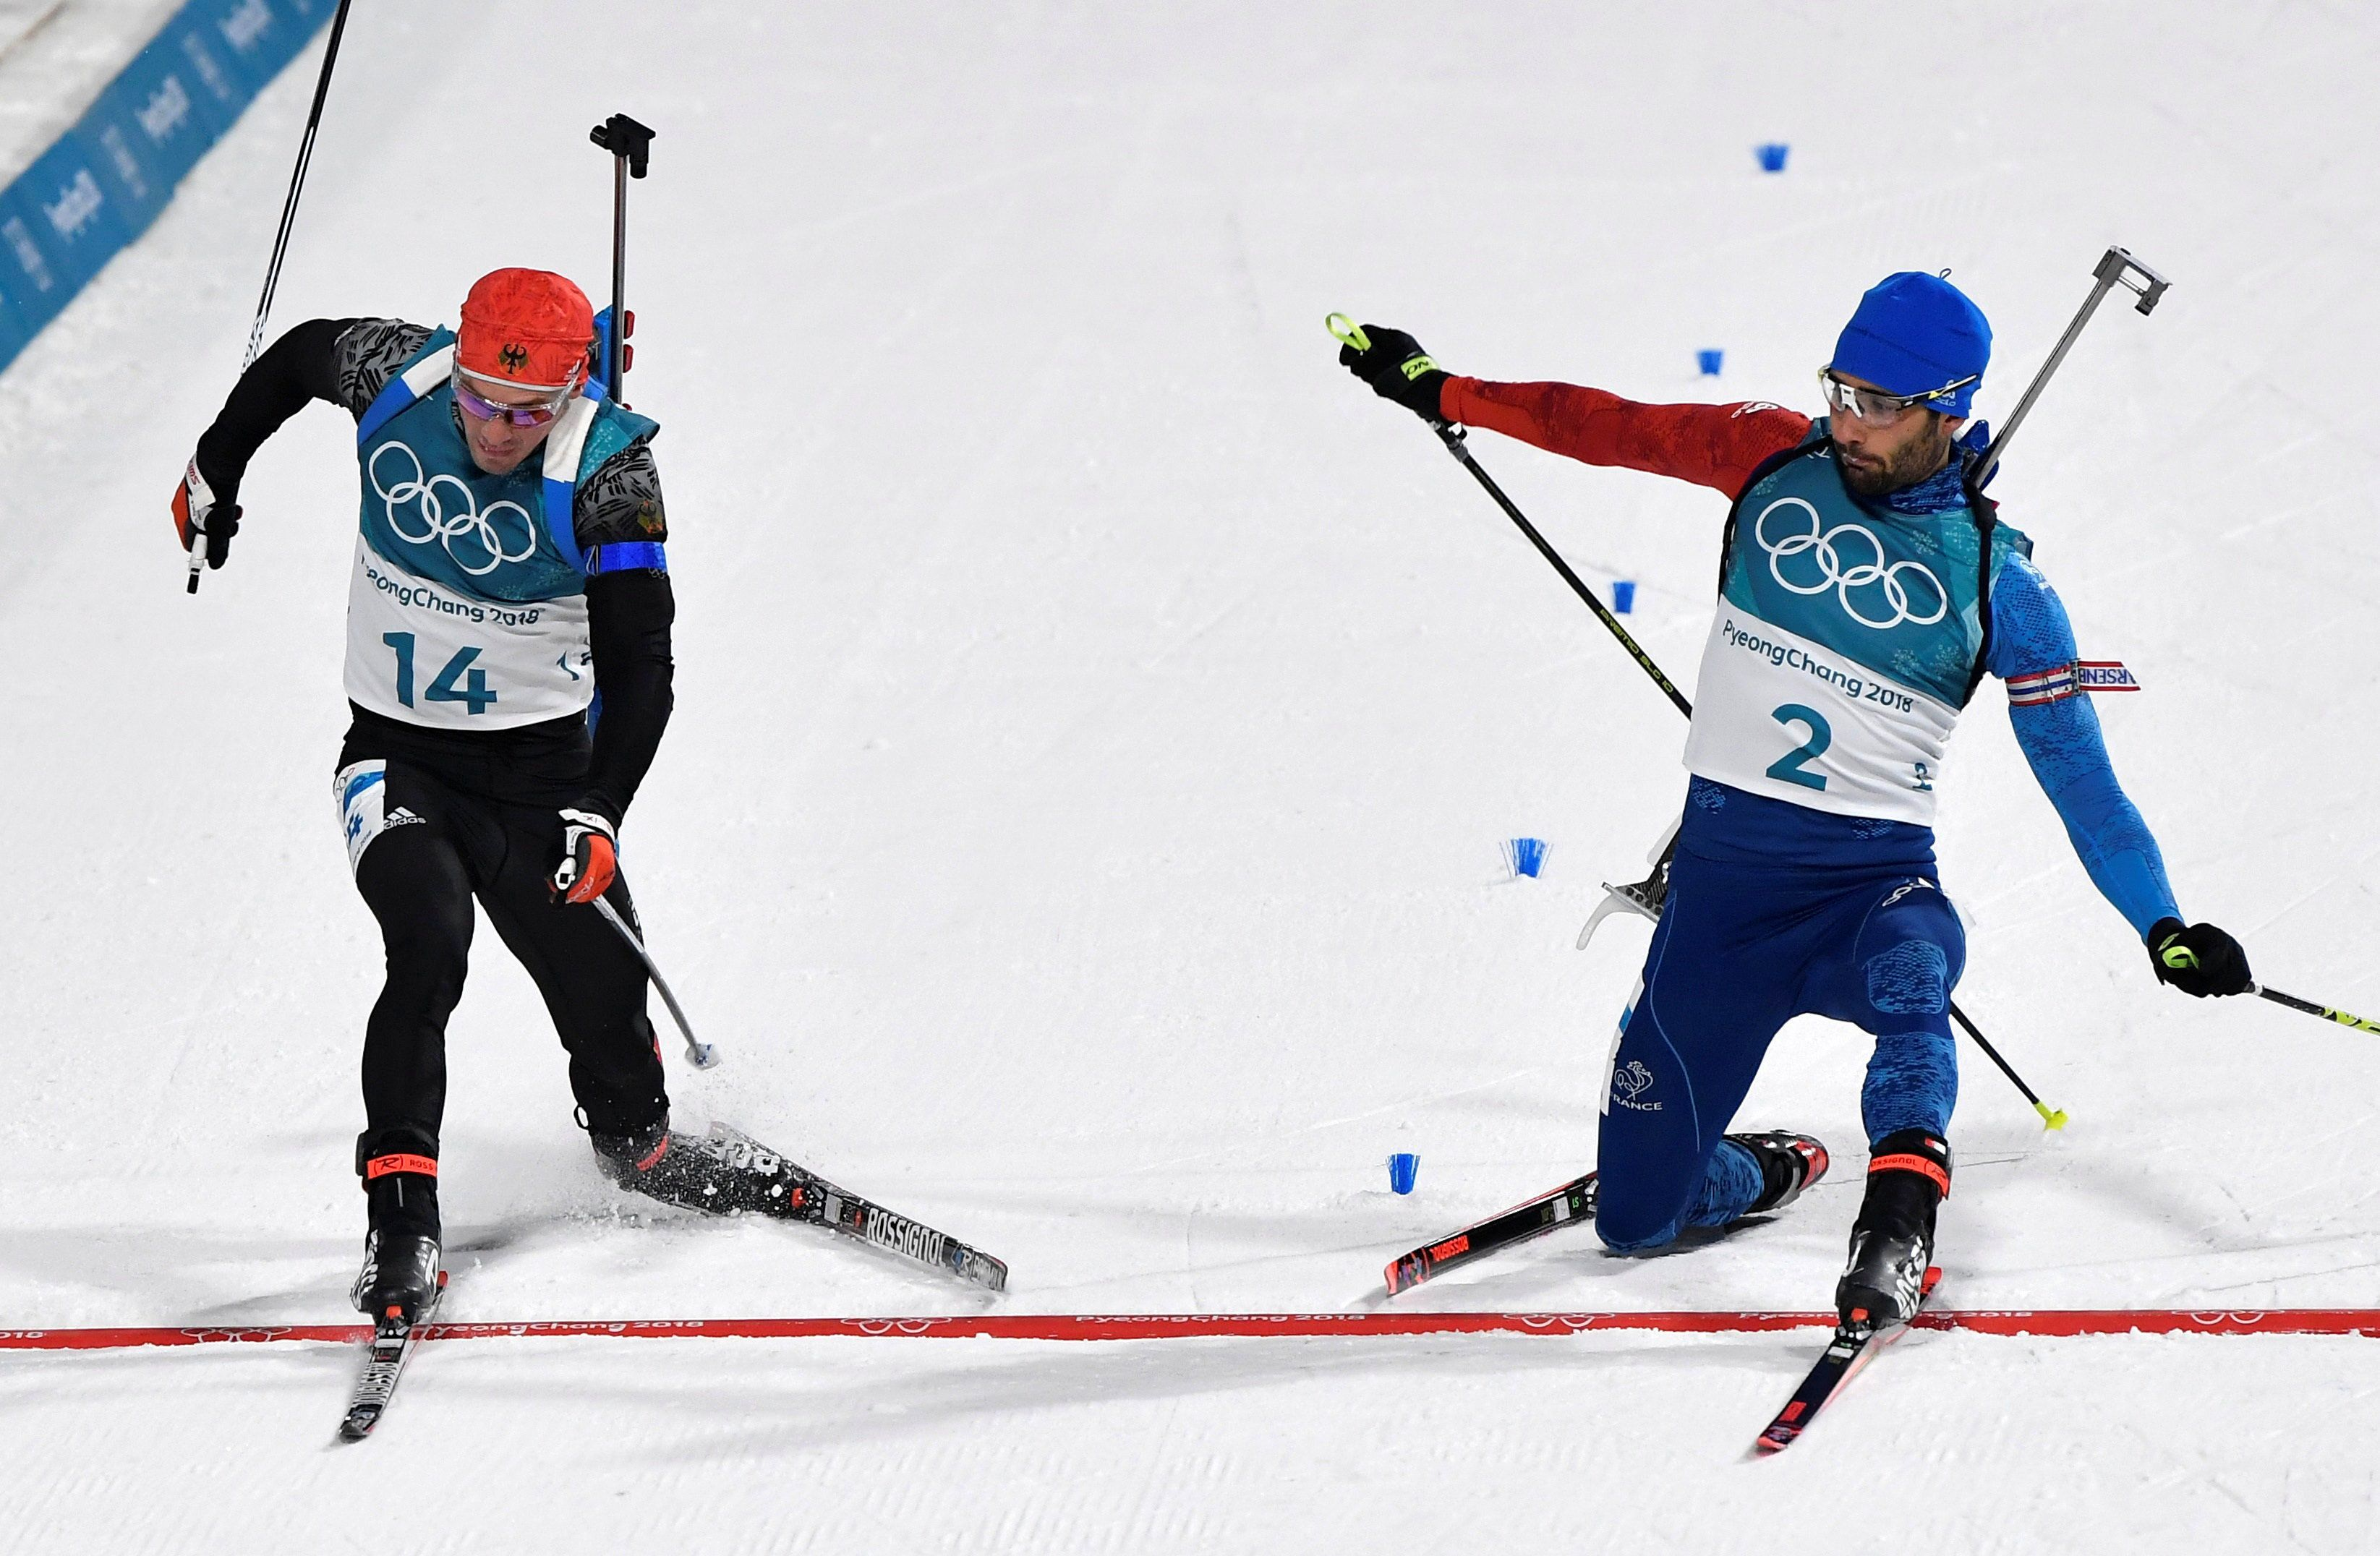 Simon Schempp of Germany, left, and Martin Fourcade of France, right, race to the finish line during...